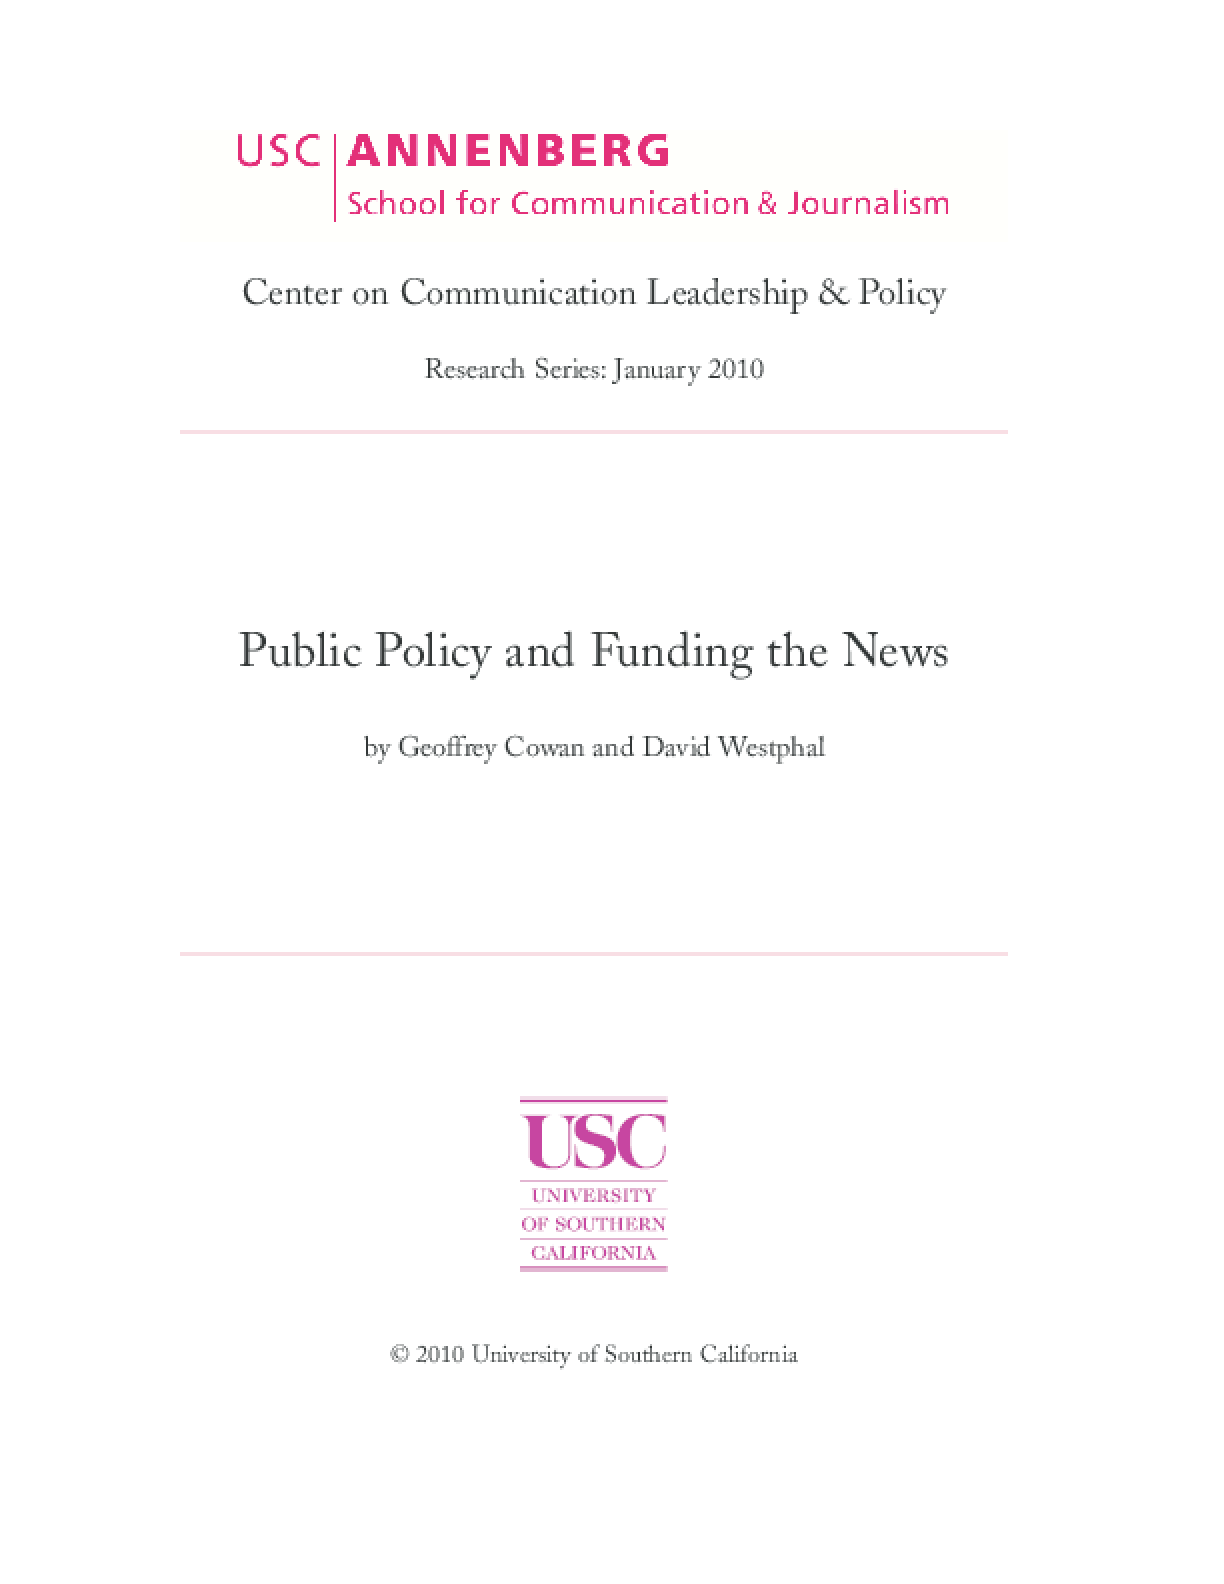 Public Policy and Funding the News